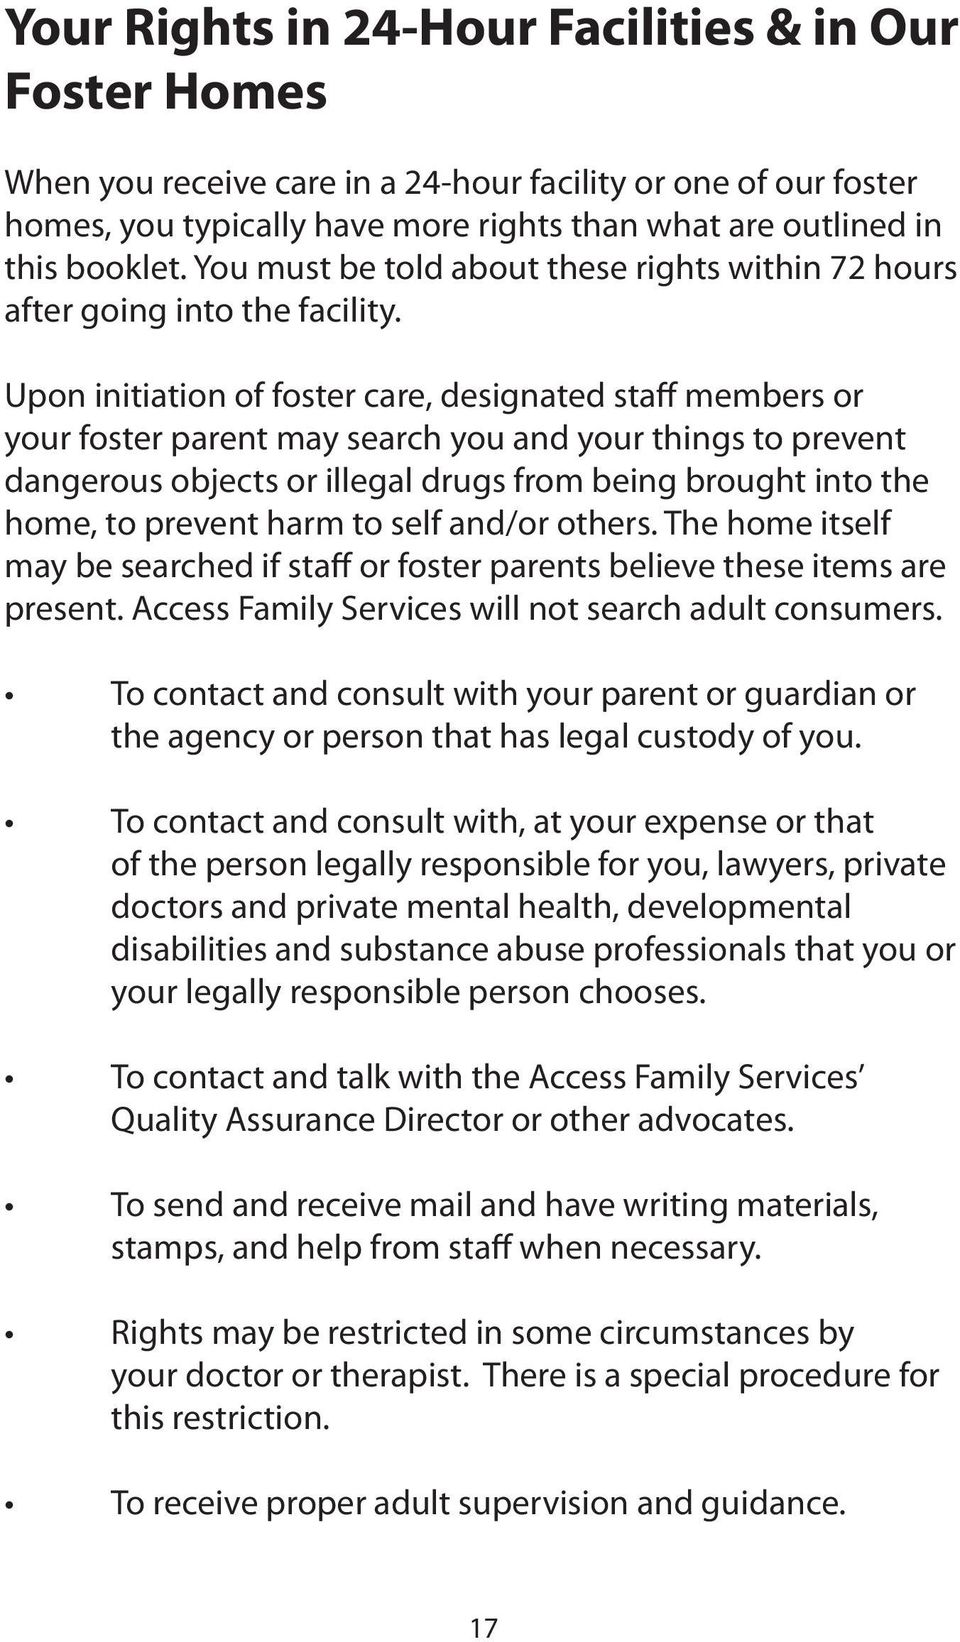 Upon initiation of foster care, designated staff members or your foster parent may search you and your things to prevent dangerous objects or illegal drugs from being brought into the home, to